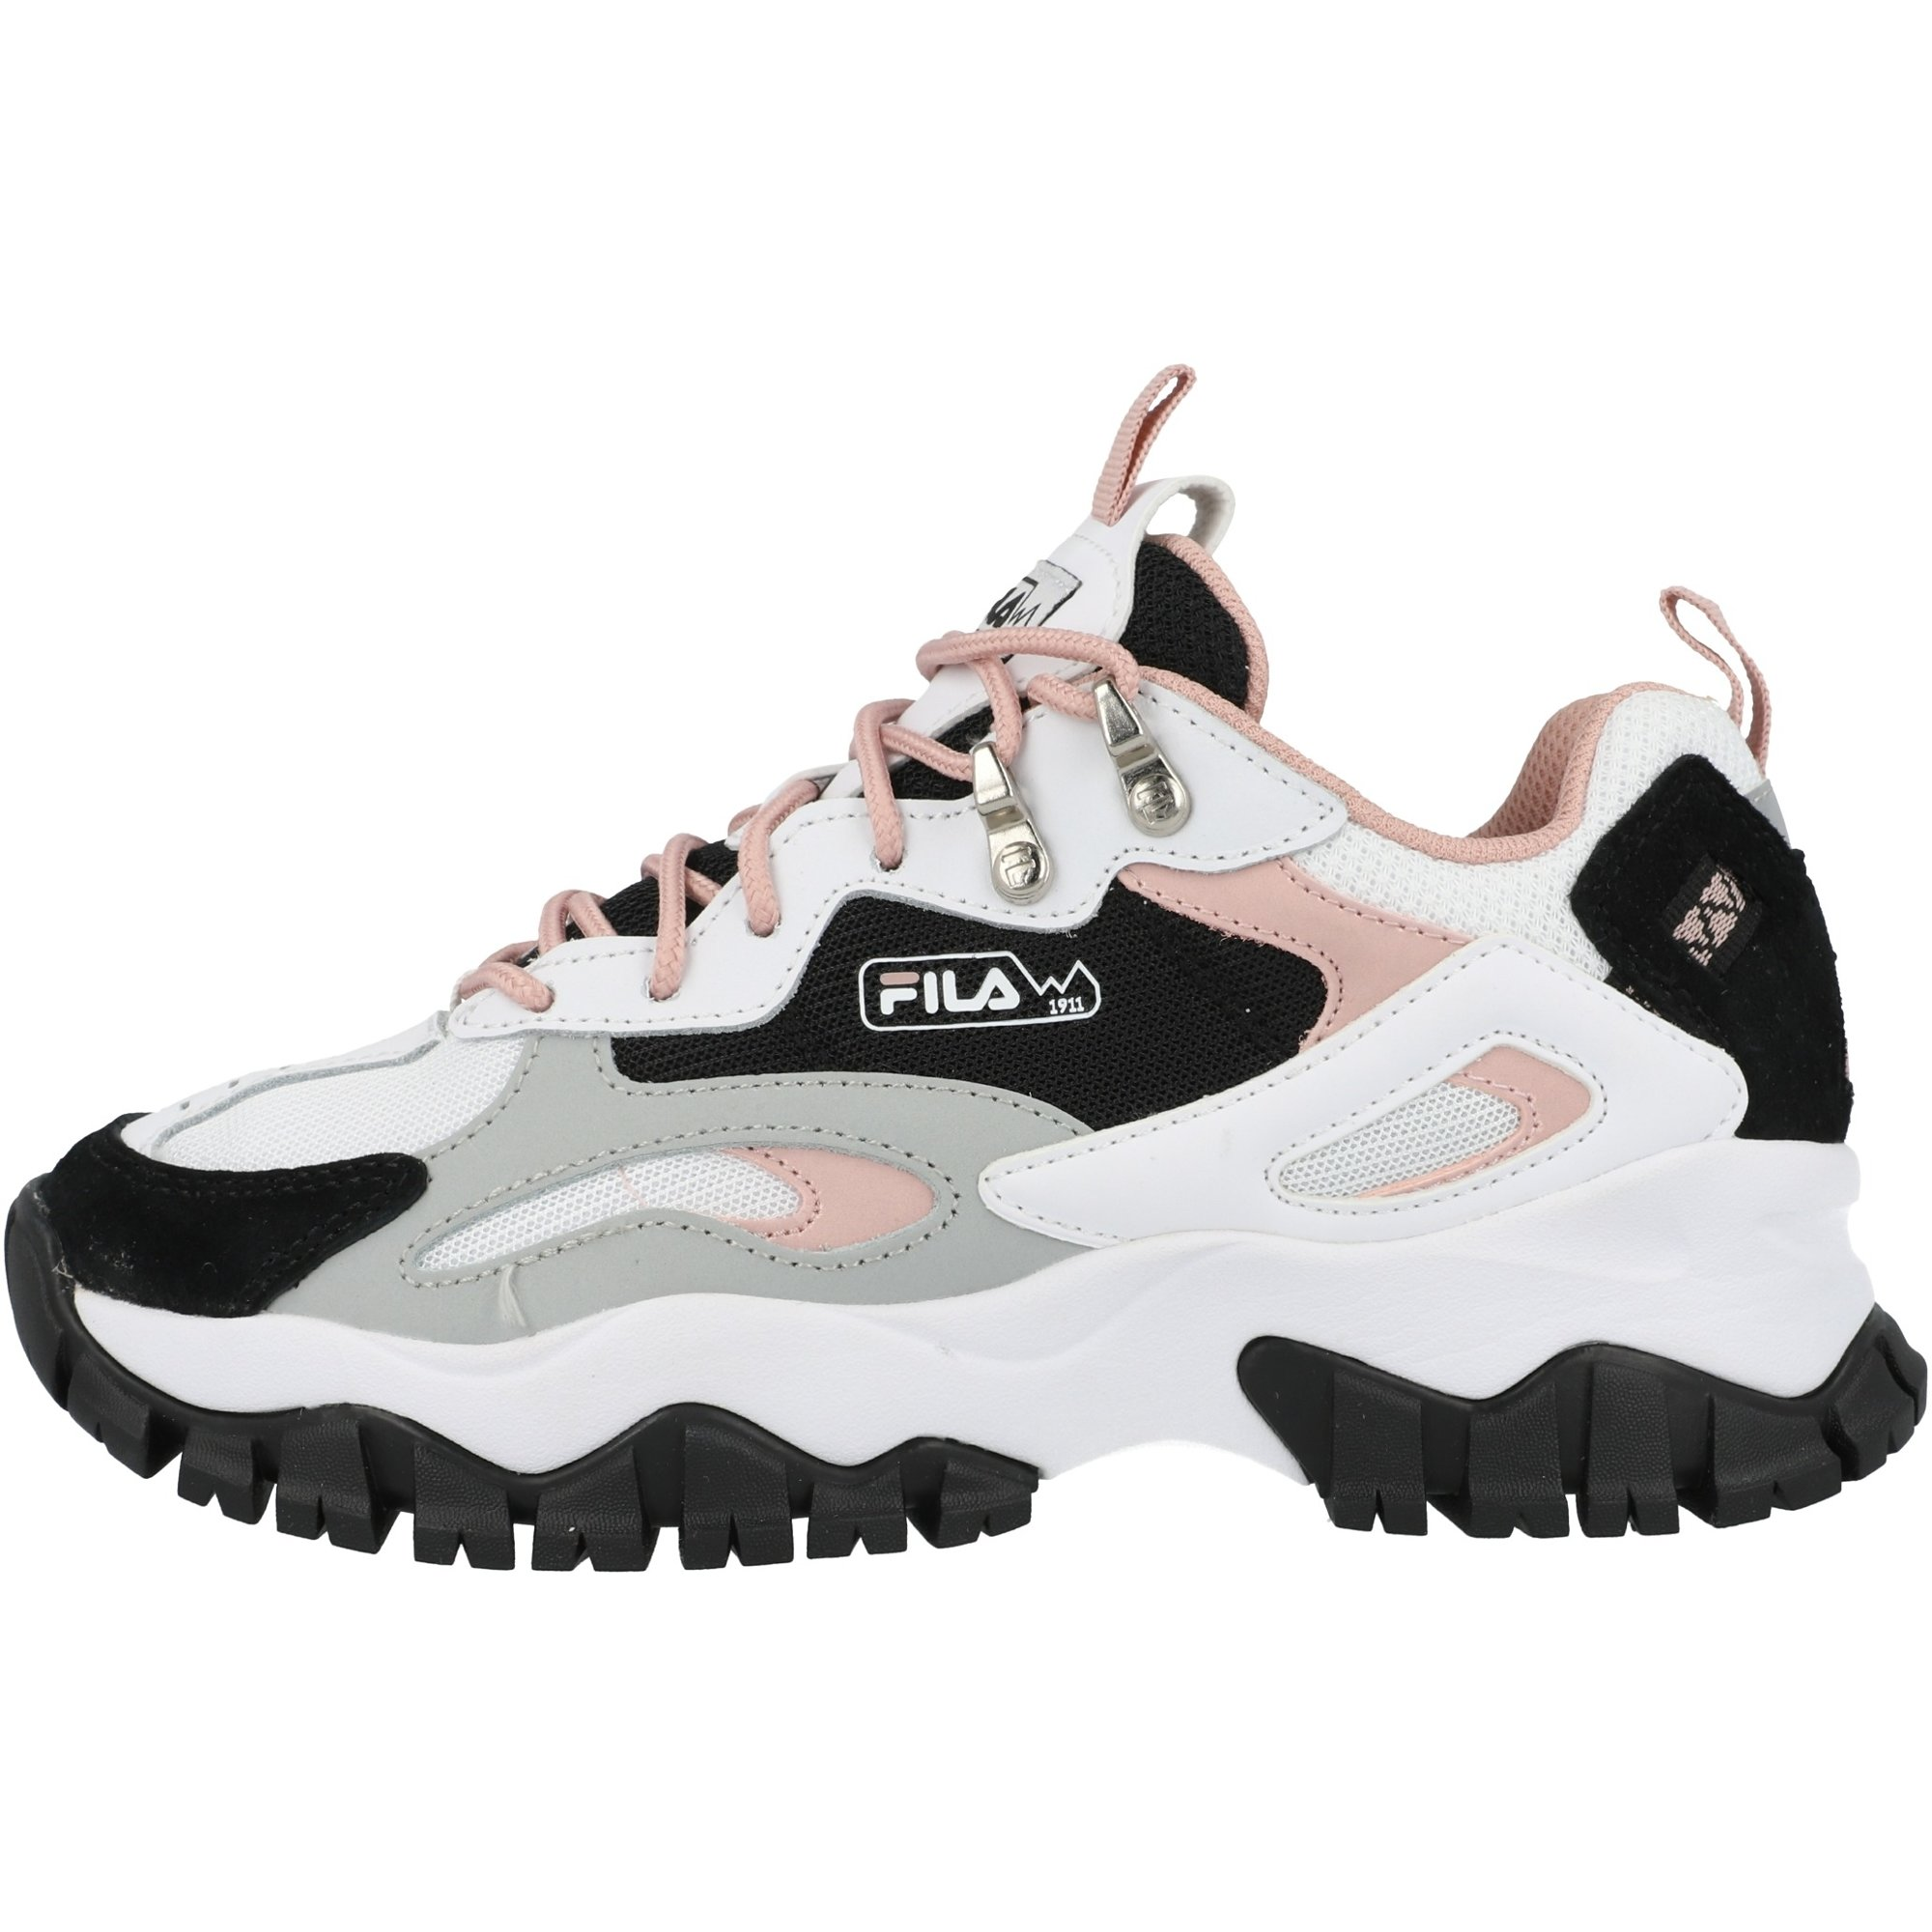 FILA Ray Tracer TR 2 White/Black Synthetic